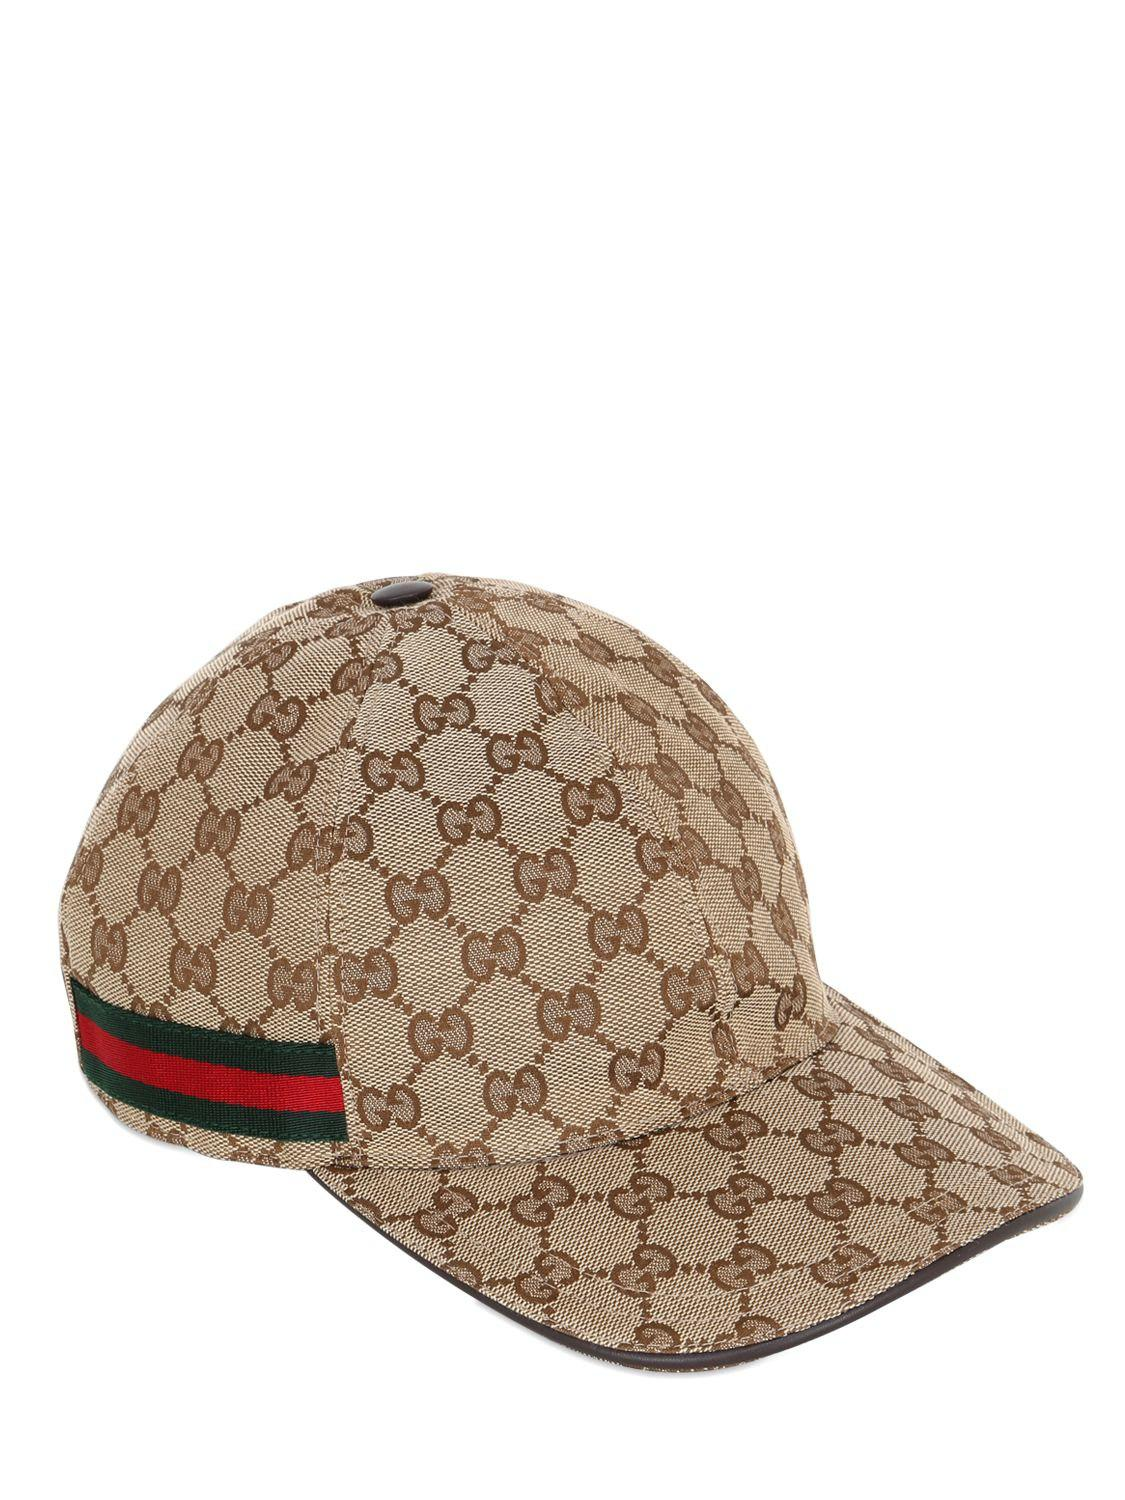 acf8c6b3ac6 Gucci Gg Supreme Logo Canvas Baseball Hat in Natural for Men - Save ...